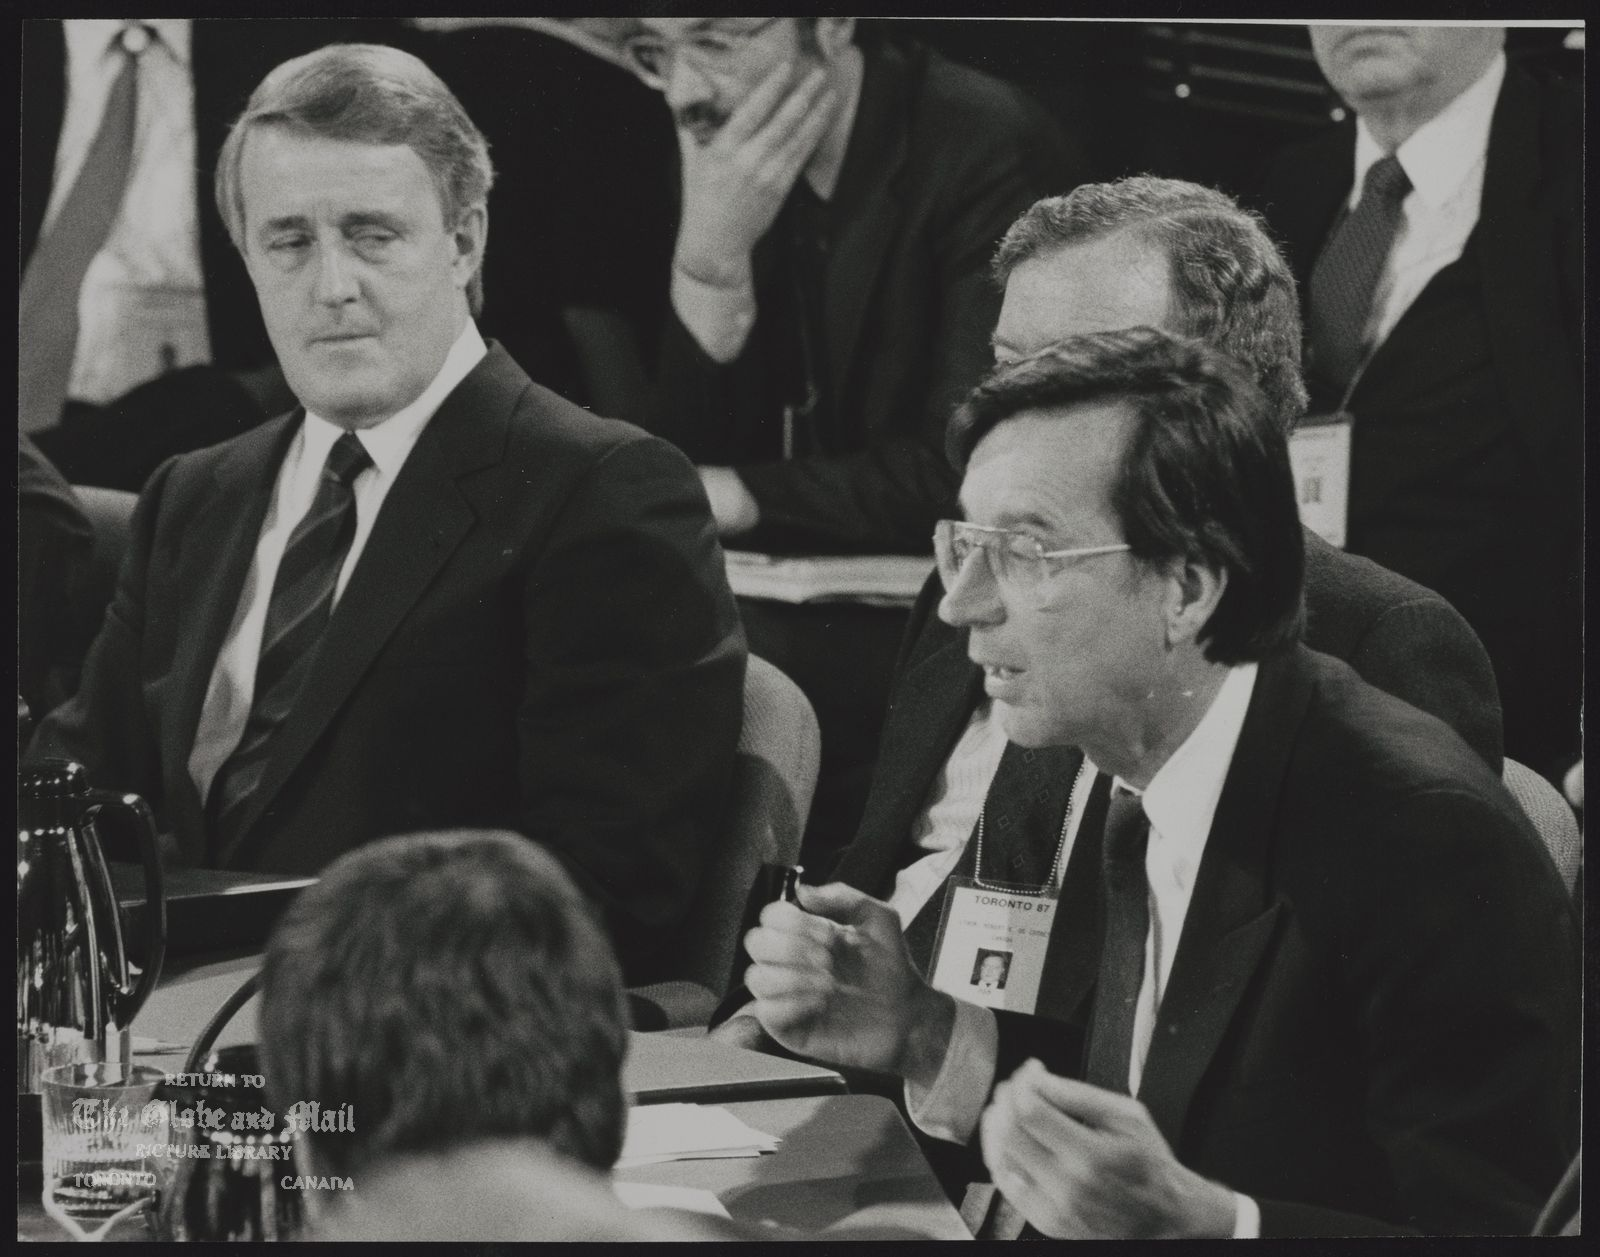 FEDERAL PROVINCIAL FIRST MINISTERS CONFERENCE Prime Minister Brian Mulroney listens to Quebec Premier Robert Bourassa